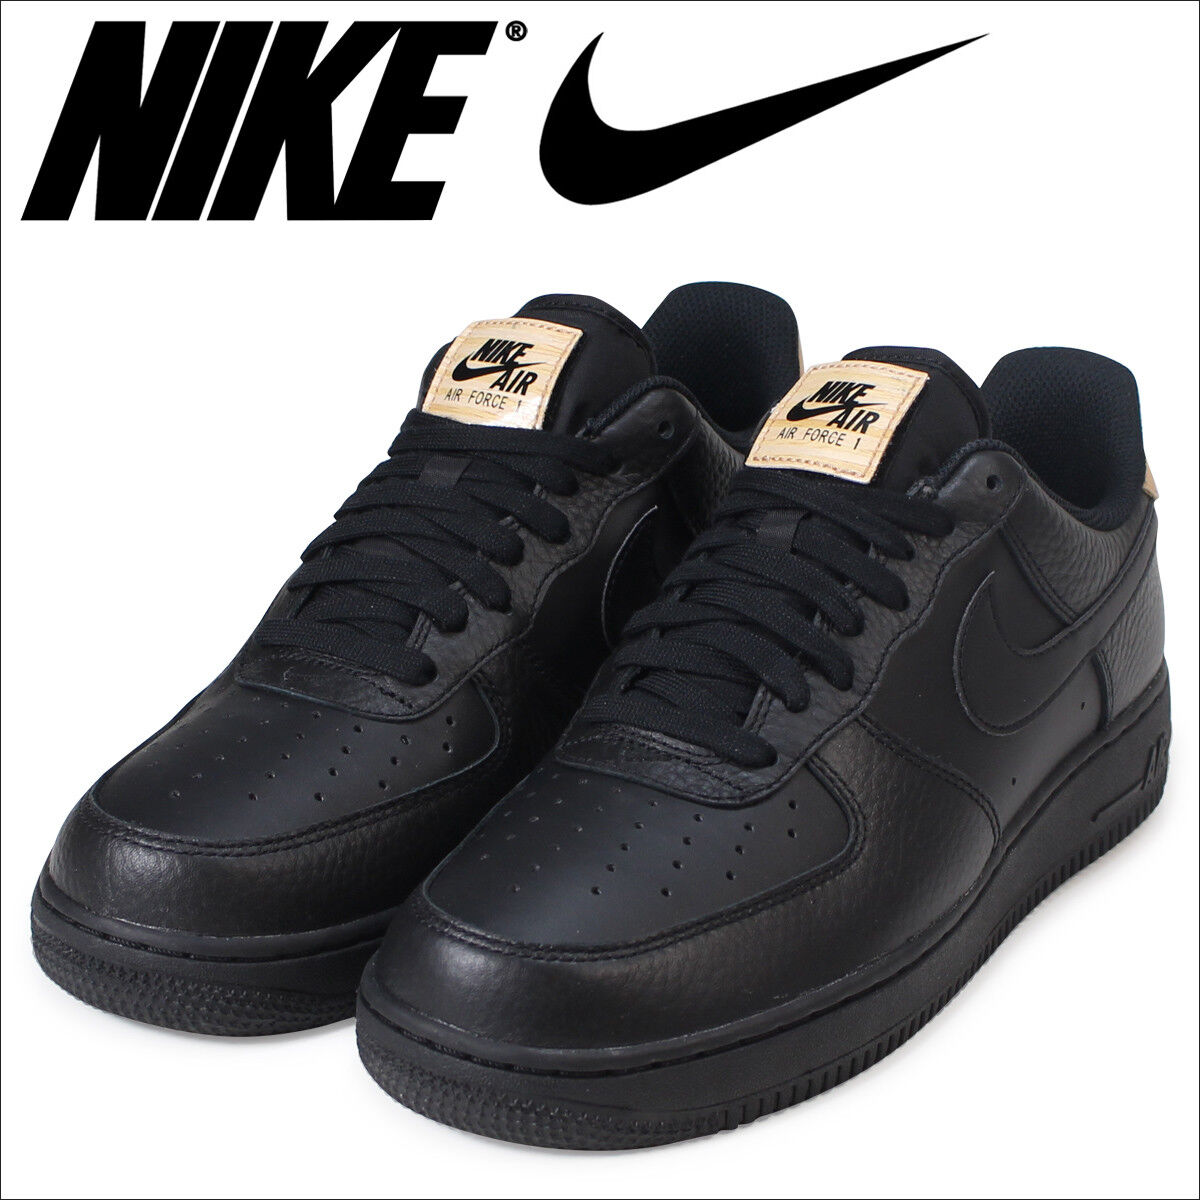 Nike Air Force 1 one 07 lv8 nuevo gr:45, 5 Negro us11, 5 negro cortos Negro 5 718152-016 dd9b6b